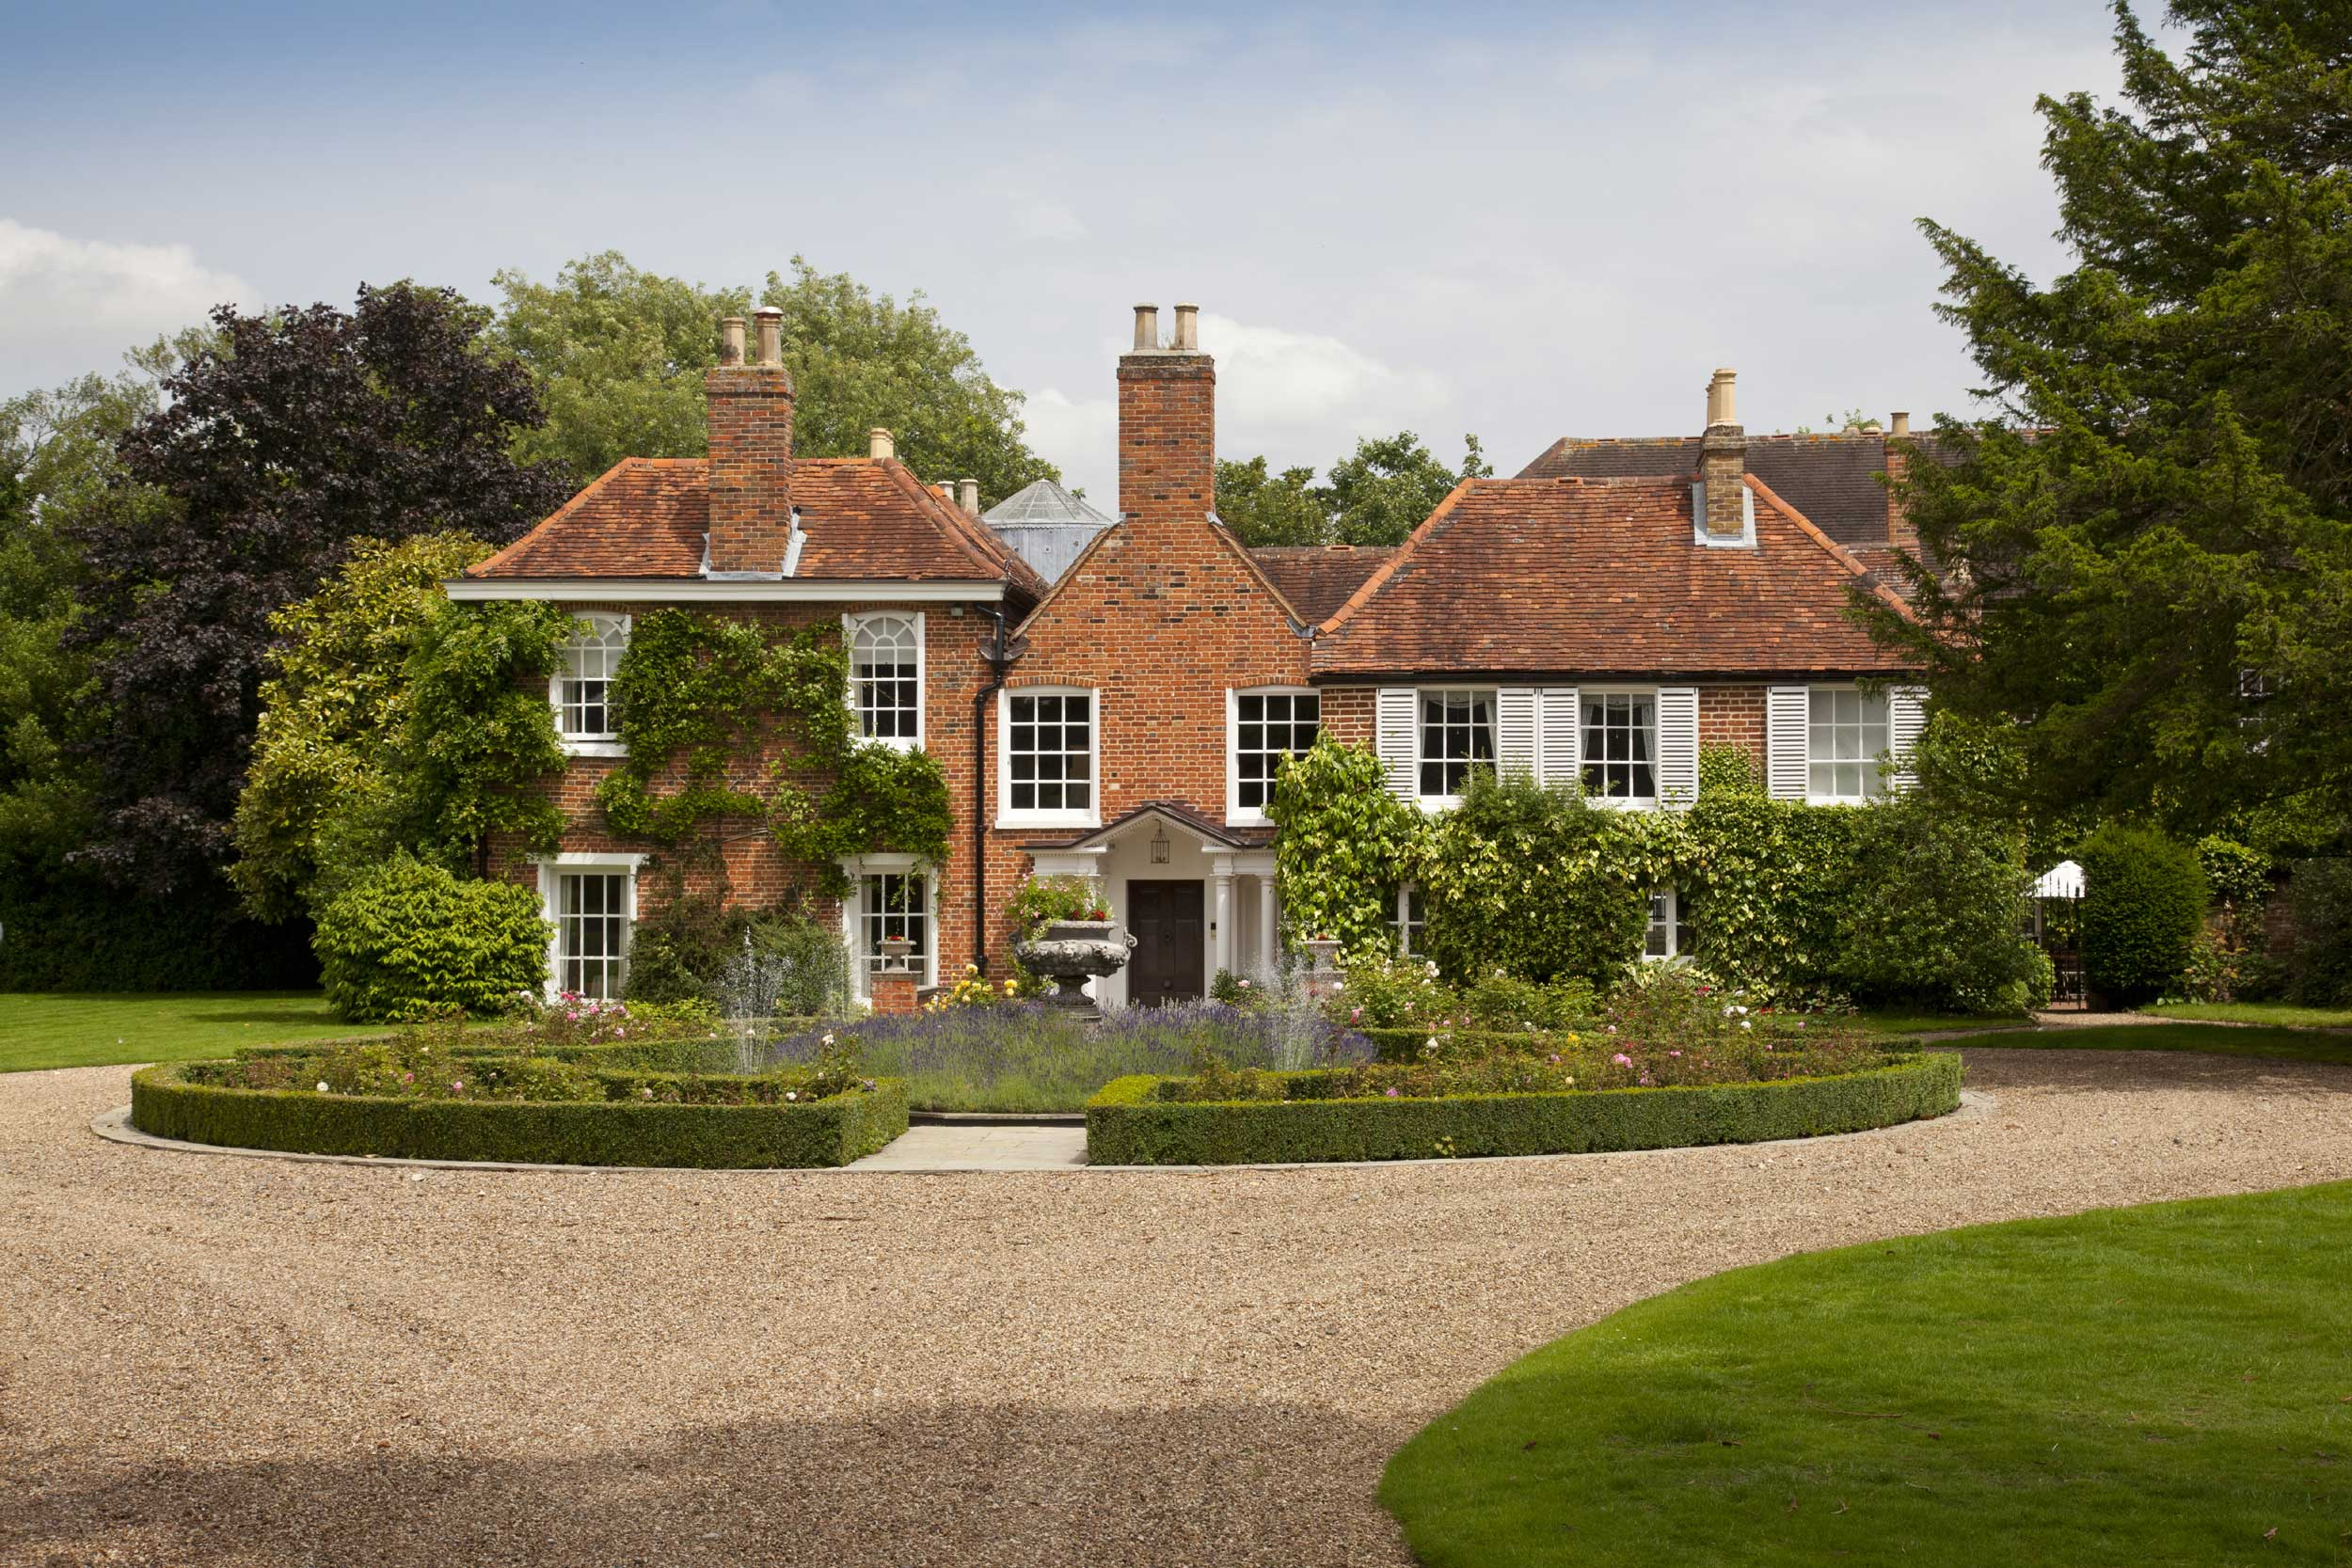 John Gays House is an important and historic Grade II-listed manor, set in beautiful gardens. Dating from the Tudor period, with Queen Anne, Georgian and Victorian additions, the house is built of red brick with attractive sash fenestration and a tile roof.